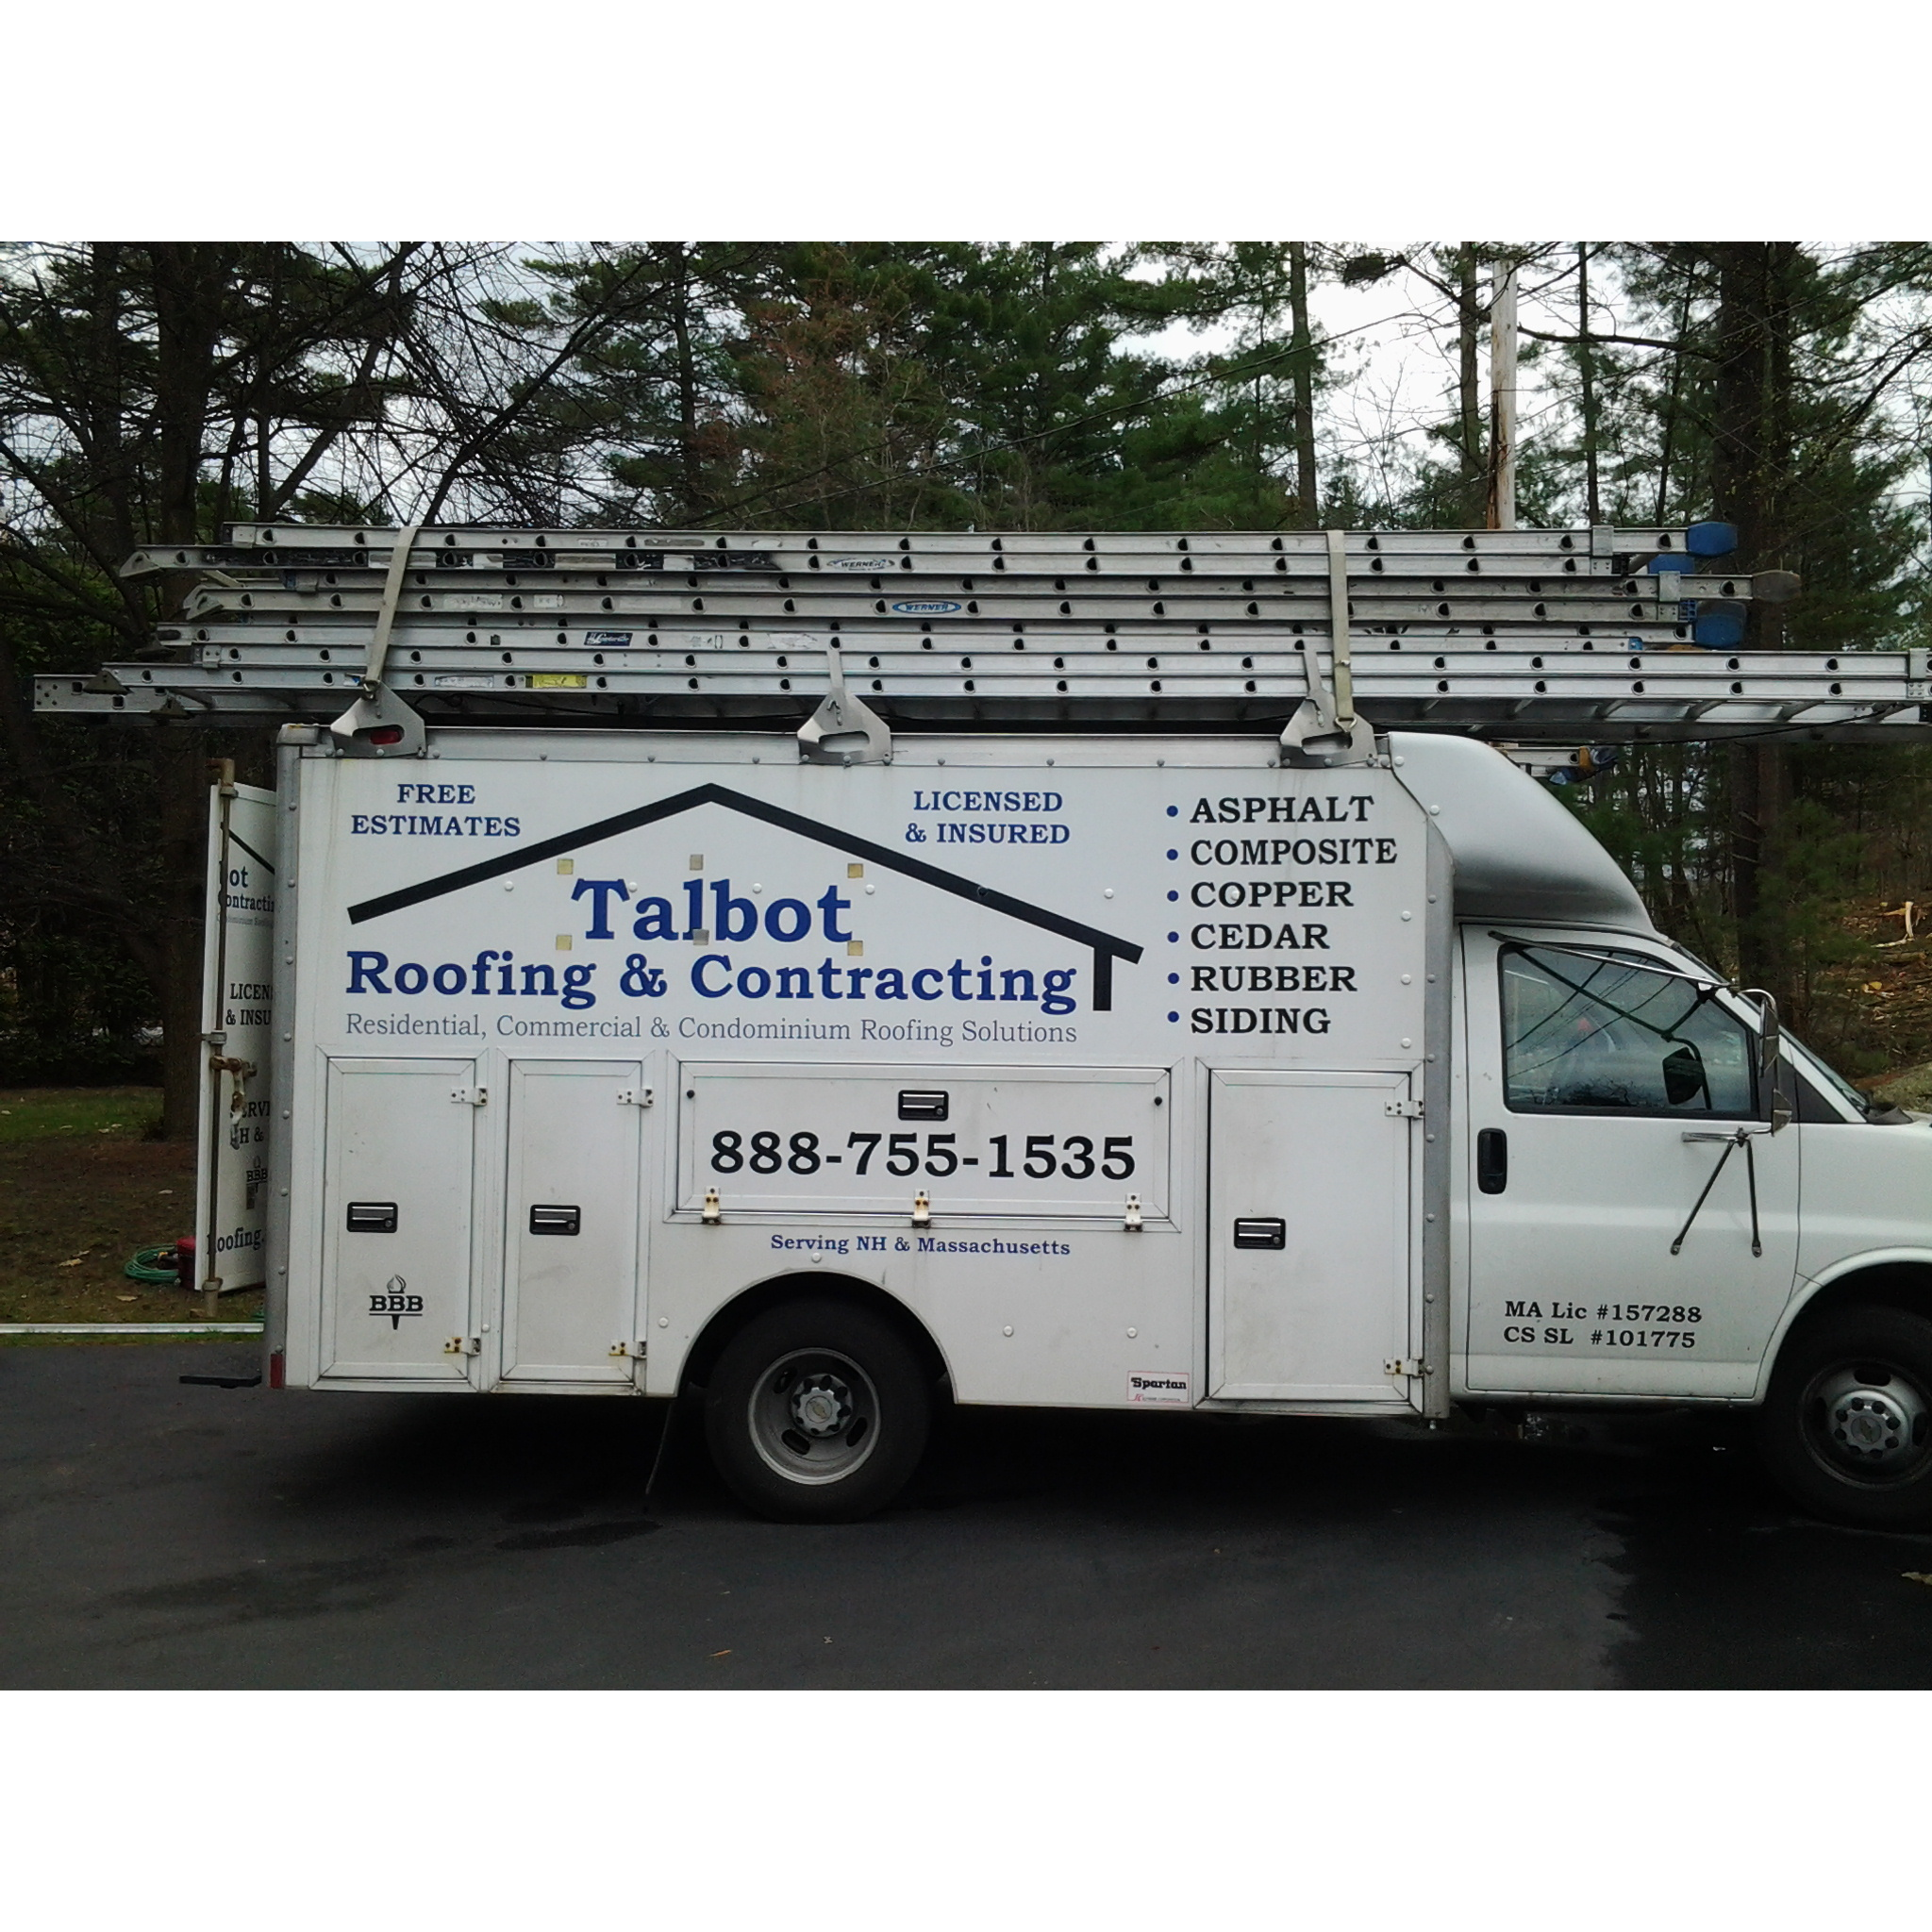 RJ Talbot Roofing & Contracting, Inc.